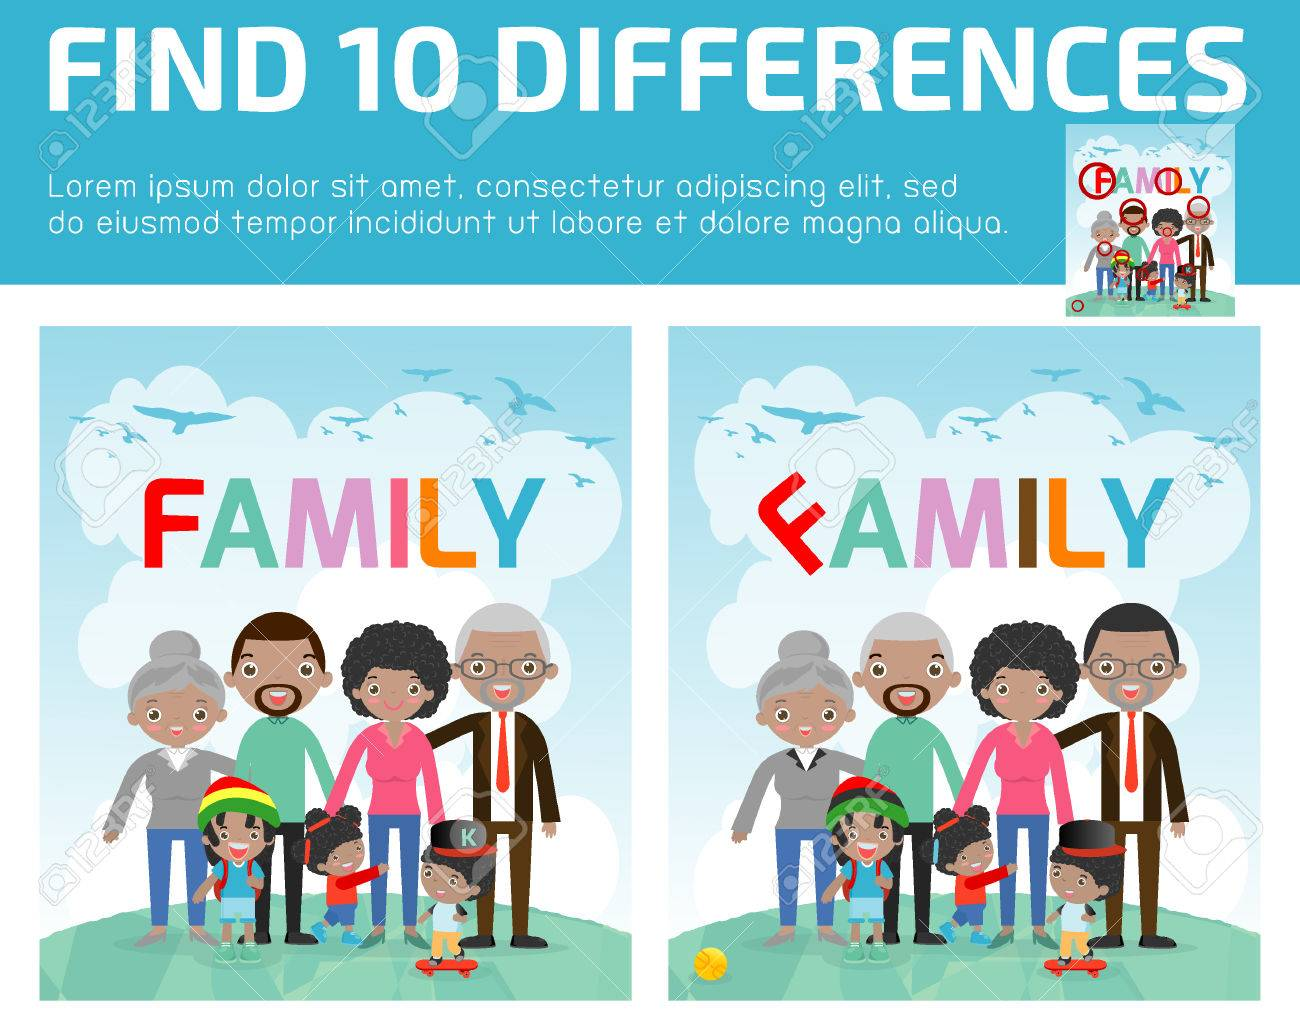 Brain Differences Seen In Children With >> Find Differences Game For Kids Find Differences Brain Games